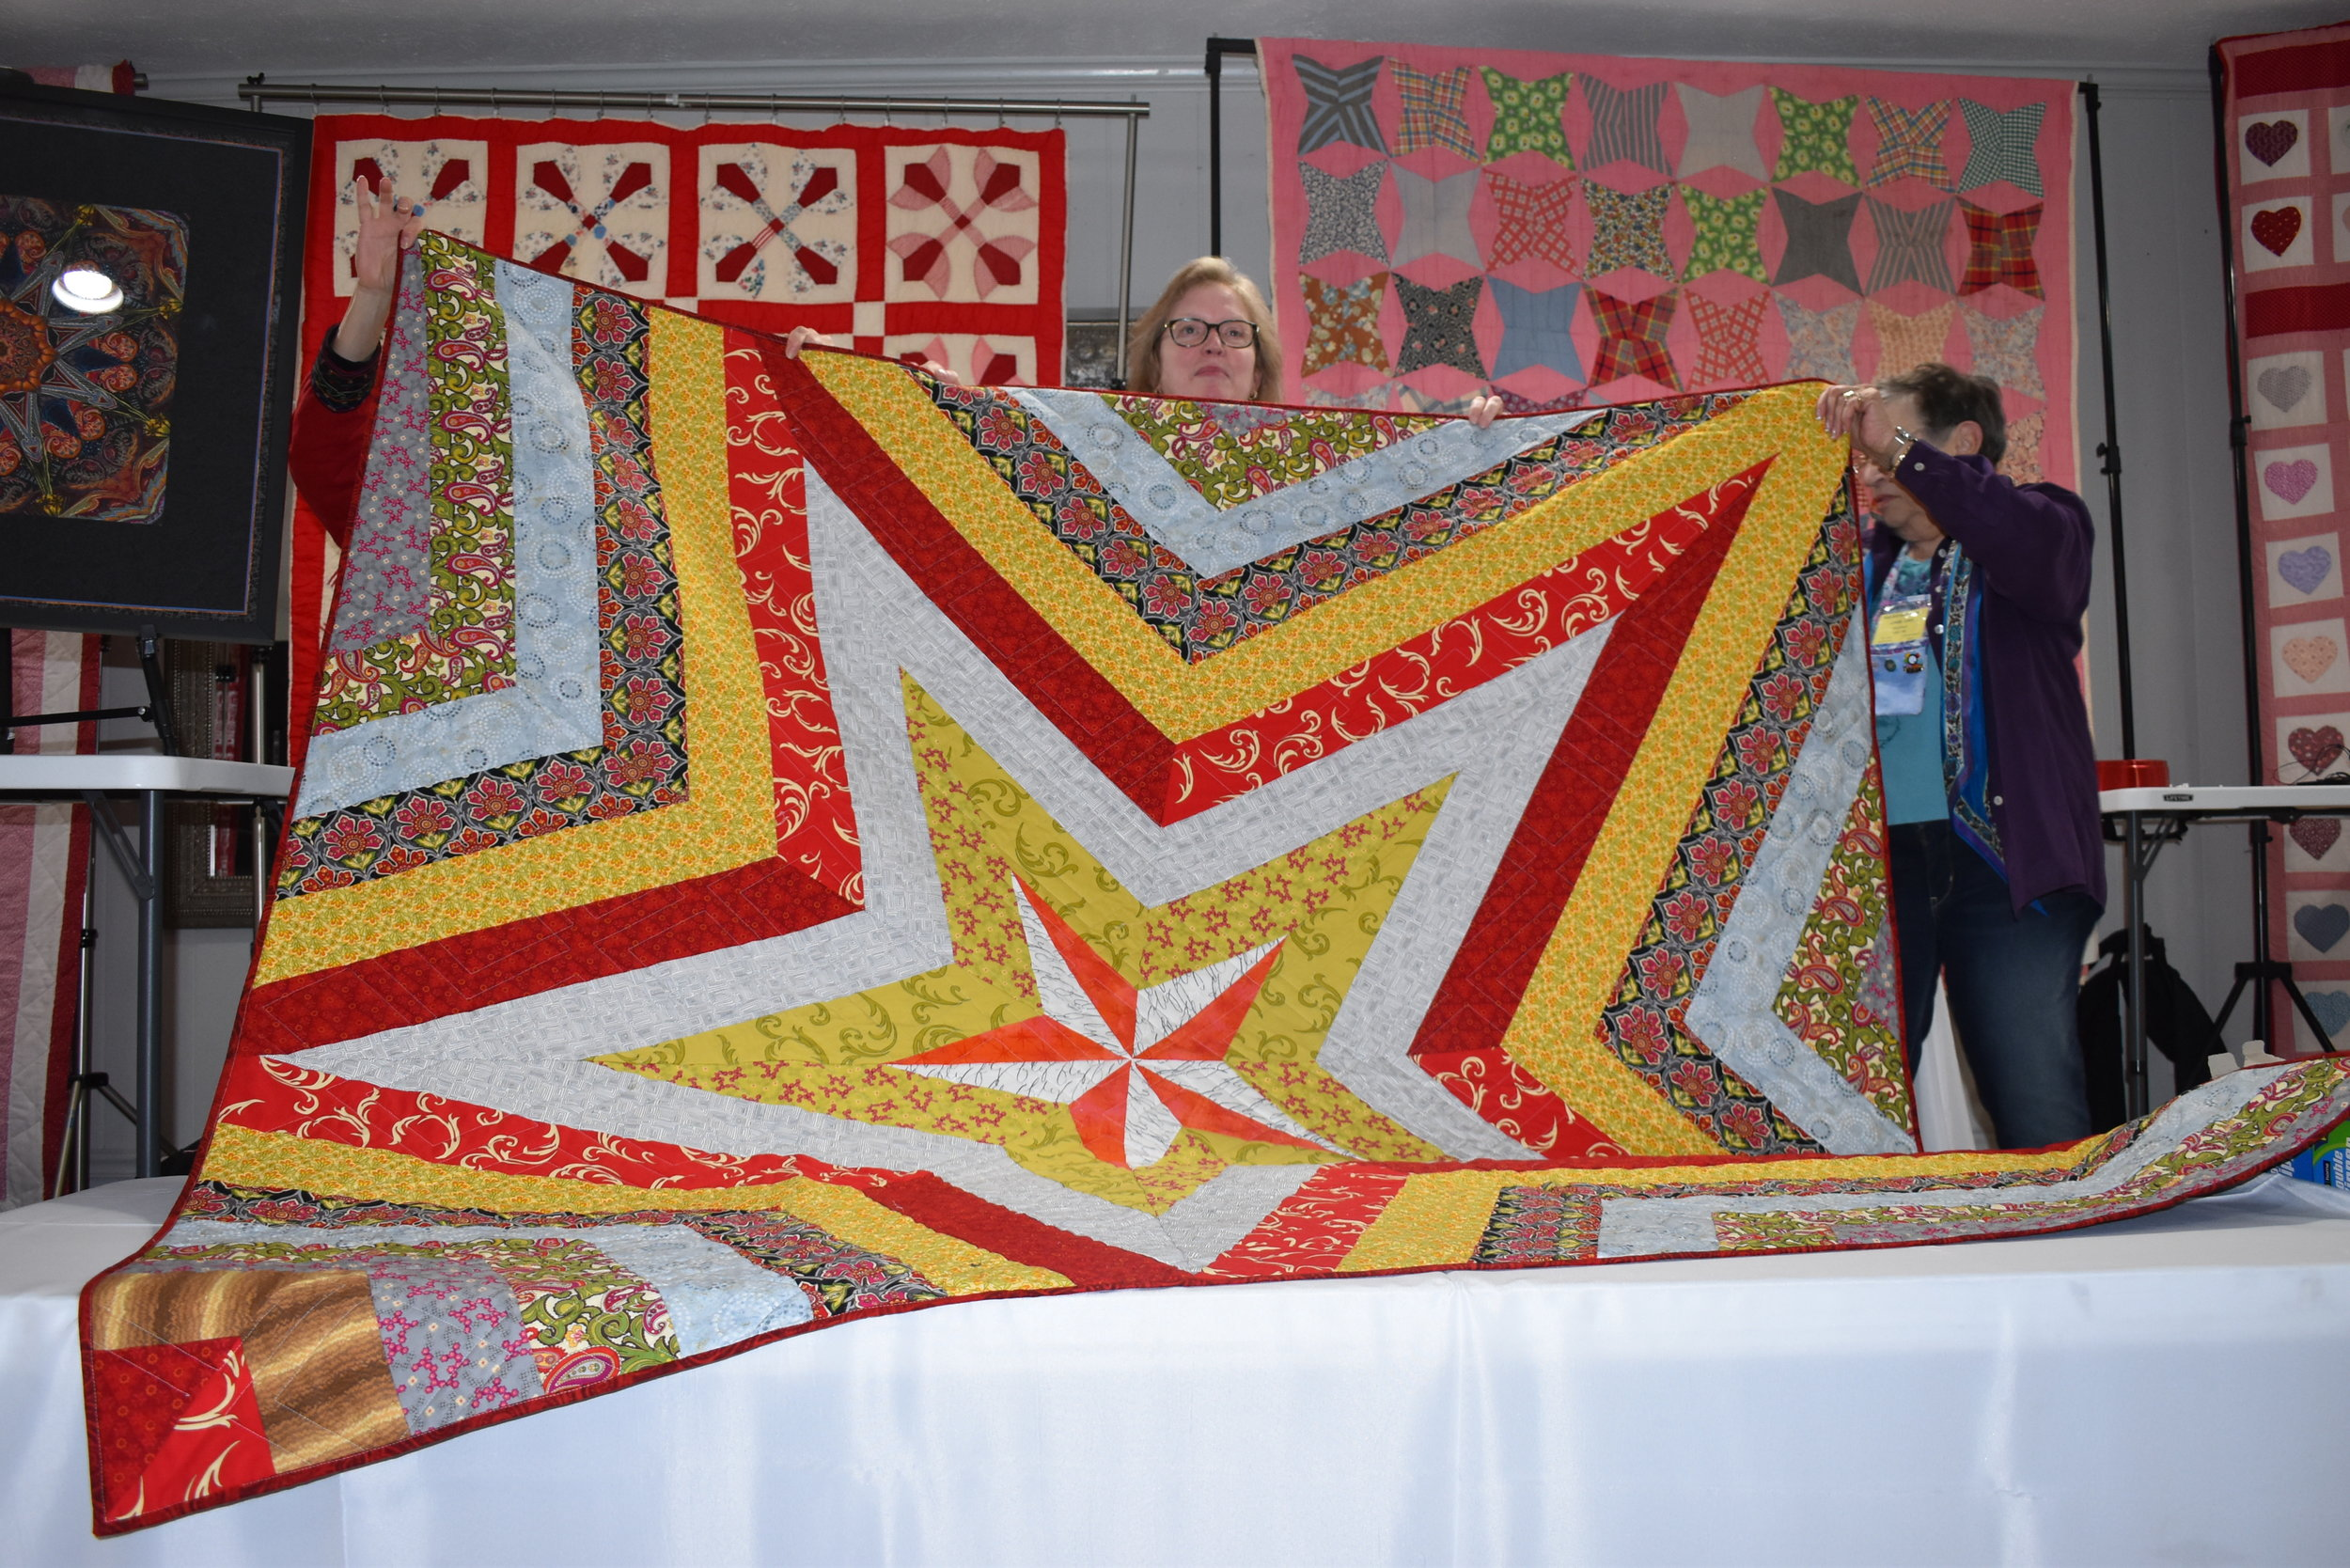 - Carol Punday showed this star quilt